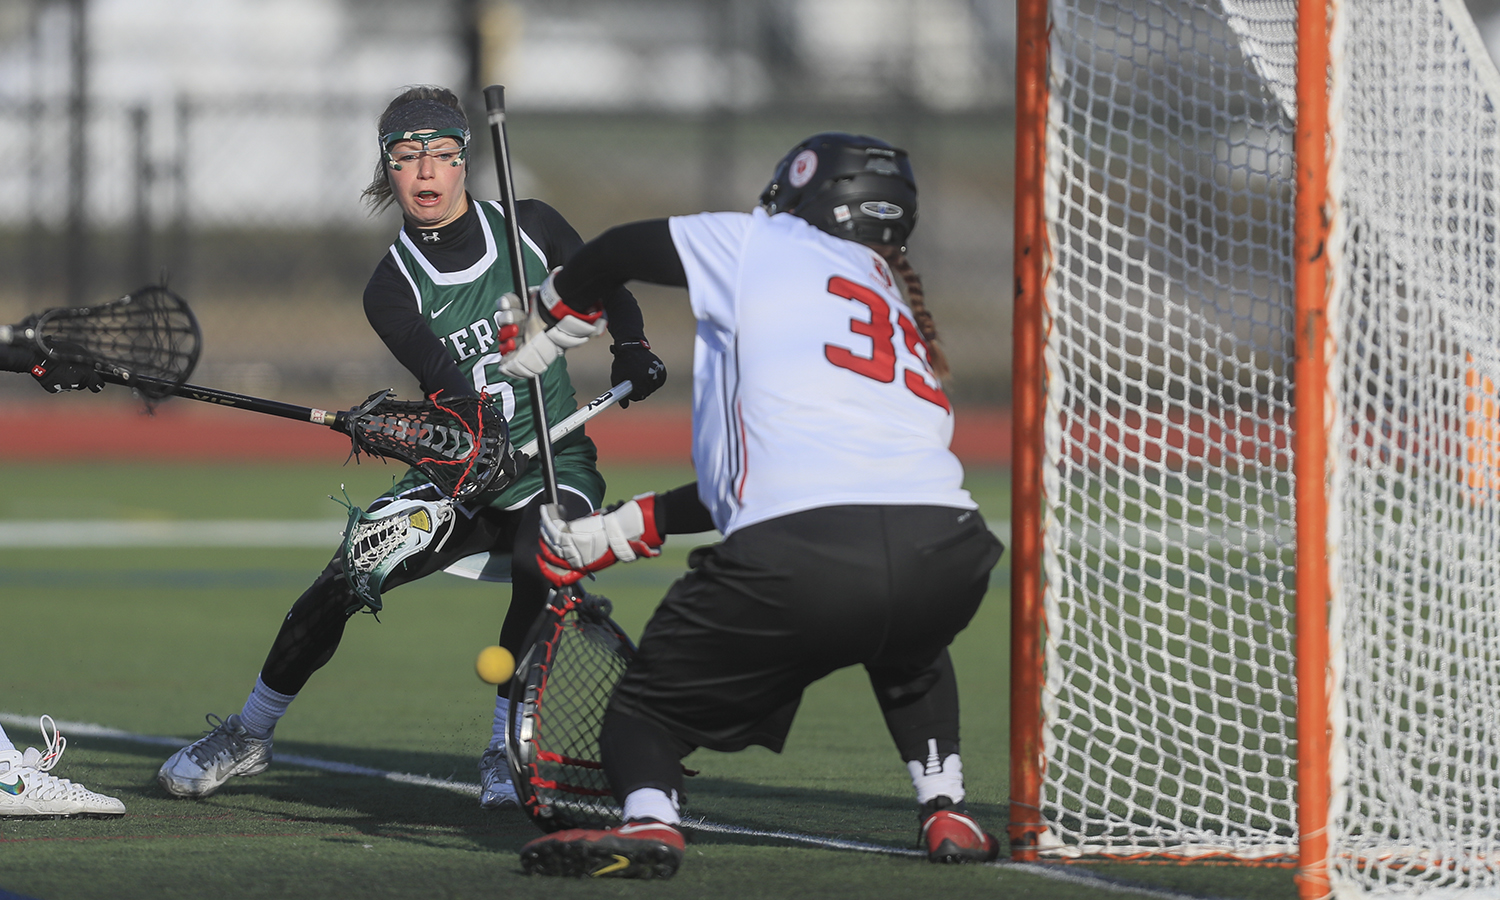 Sarah Benyo '18 puts a shot on goal during William Smith's game against RPI.